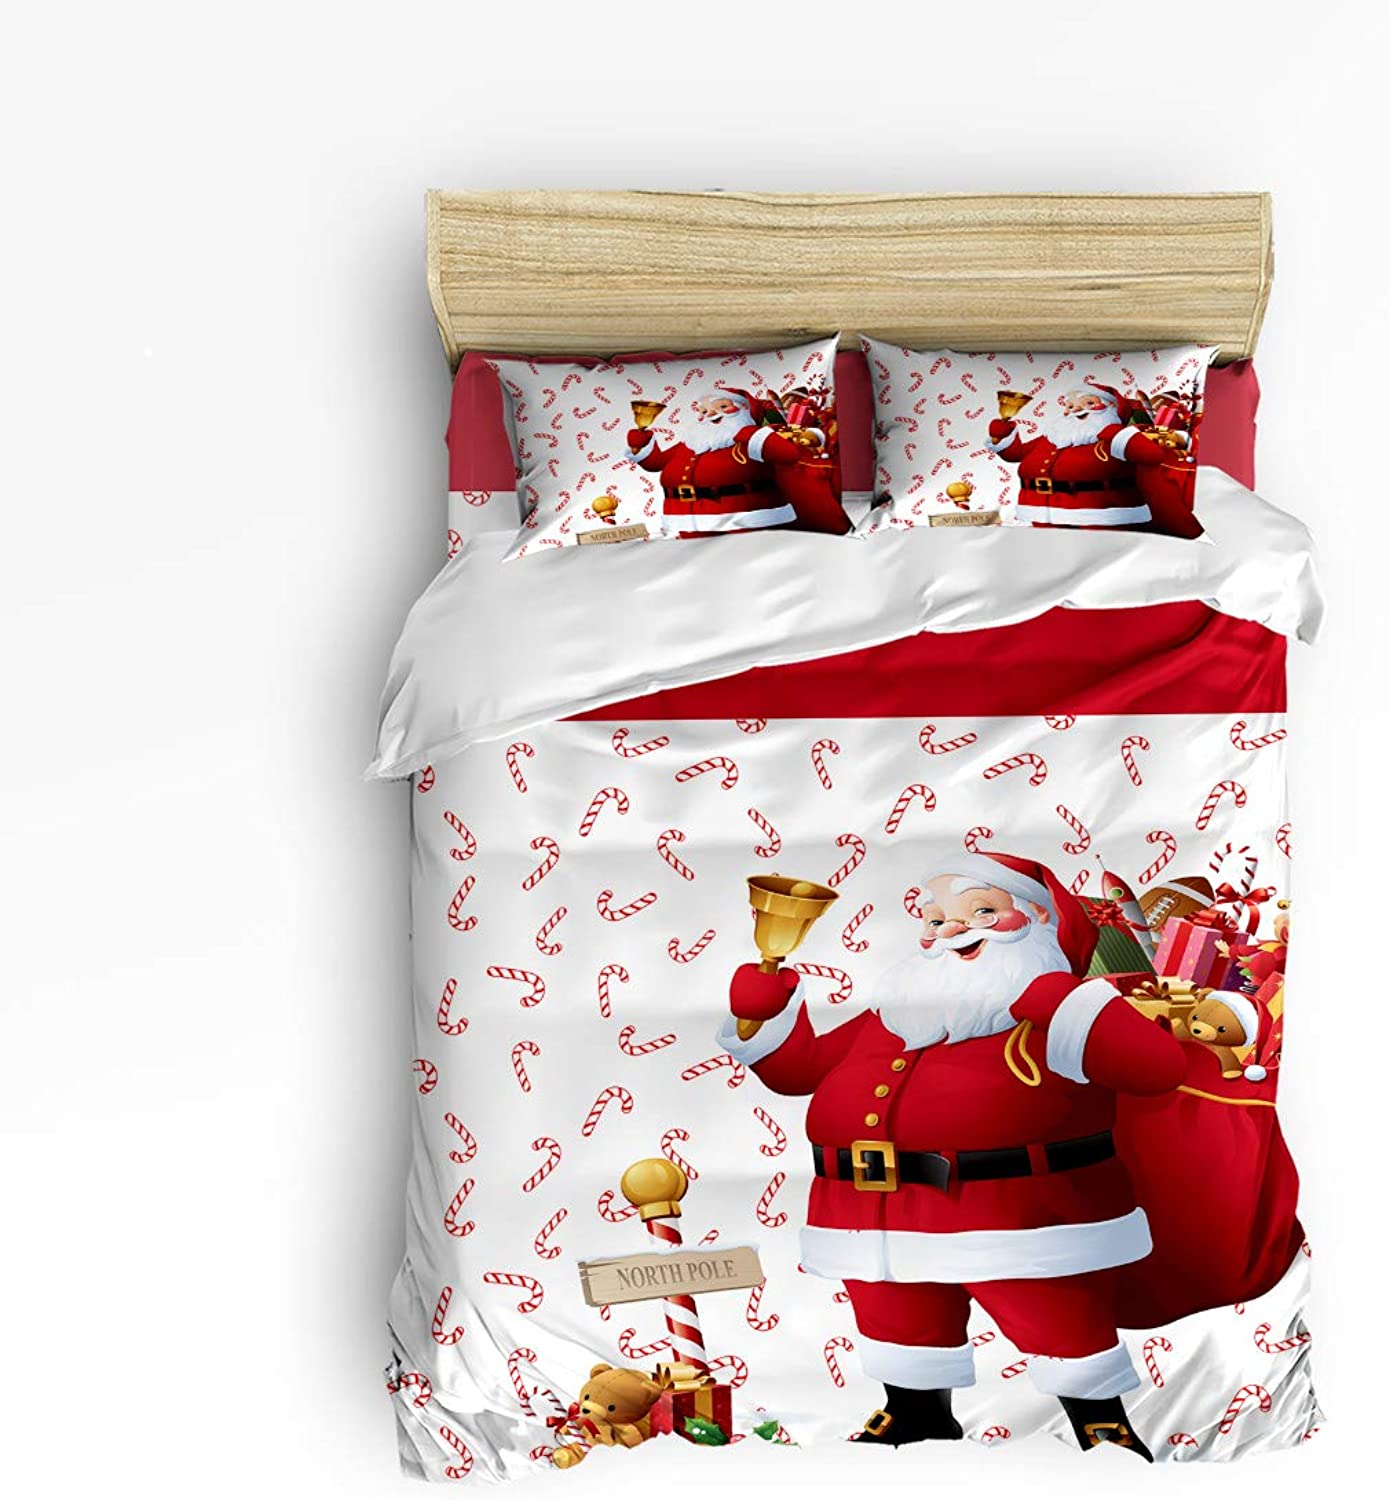 Fandim Fly Bedding Set Queen Size, Giving Presents Santa Claus Christmas Decor,Comforter Cover Sets for All Season